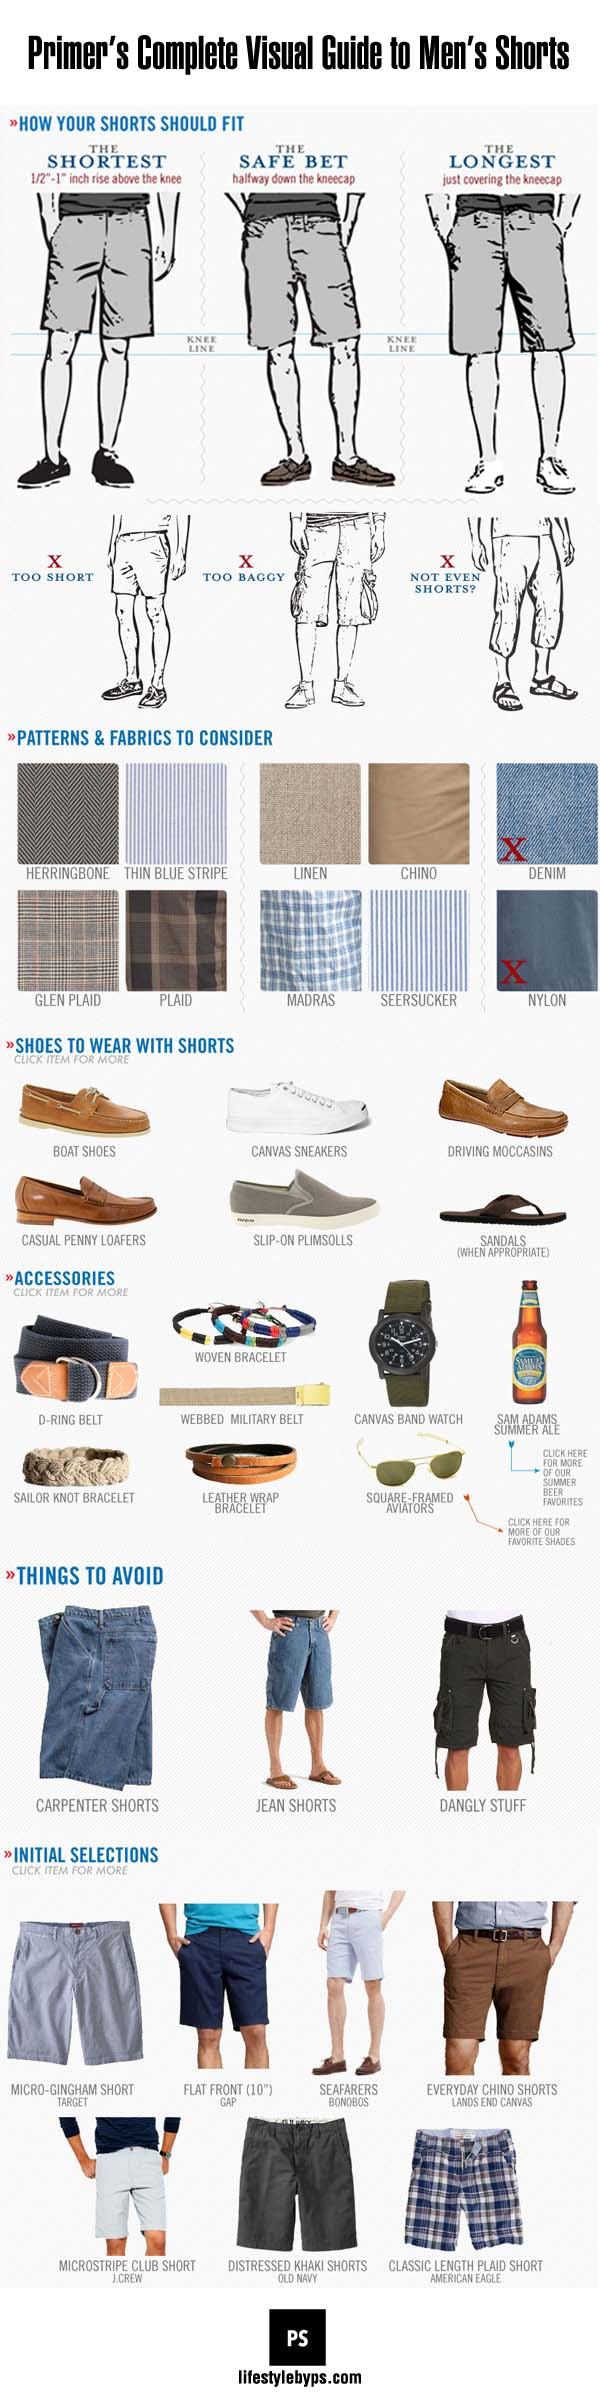 Visual guide to men's shorts